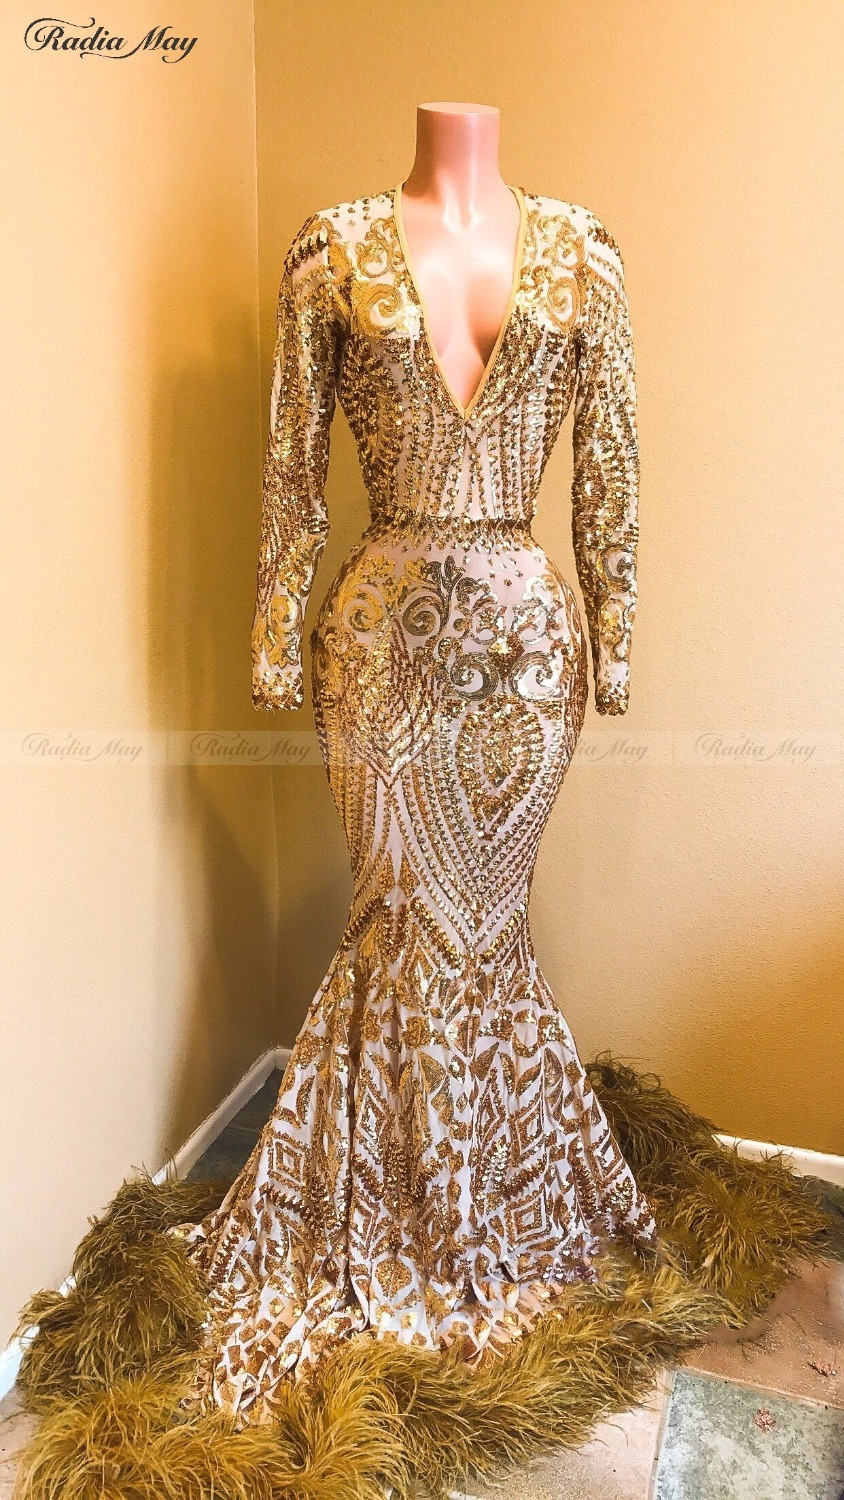 Sparkly Sequin Gold Mermaid Long Sleeves Prom Dresses With Feathers Train Sexy V-Neck Plus Size Yellow Long Formal Evening Dress